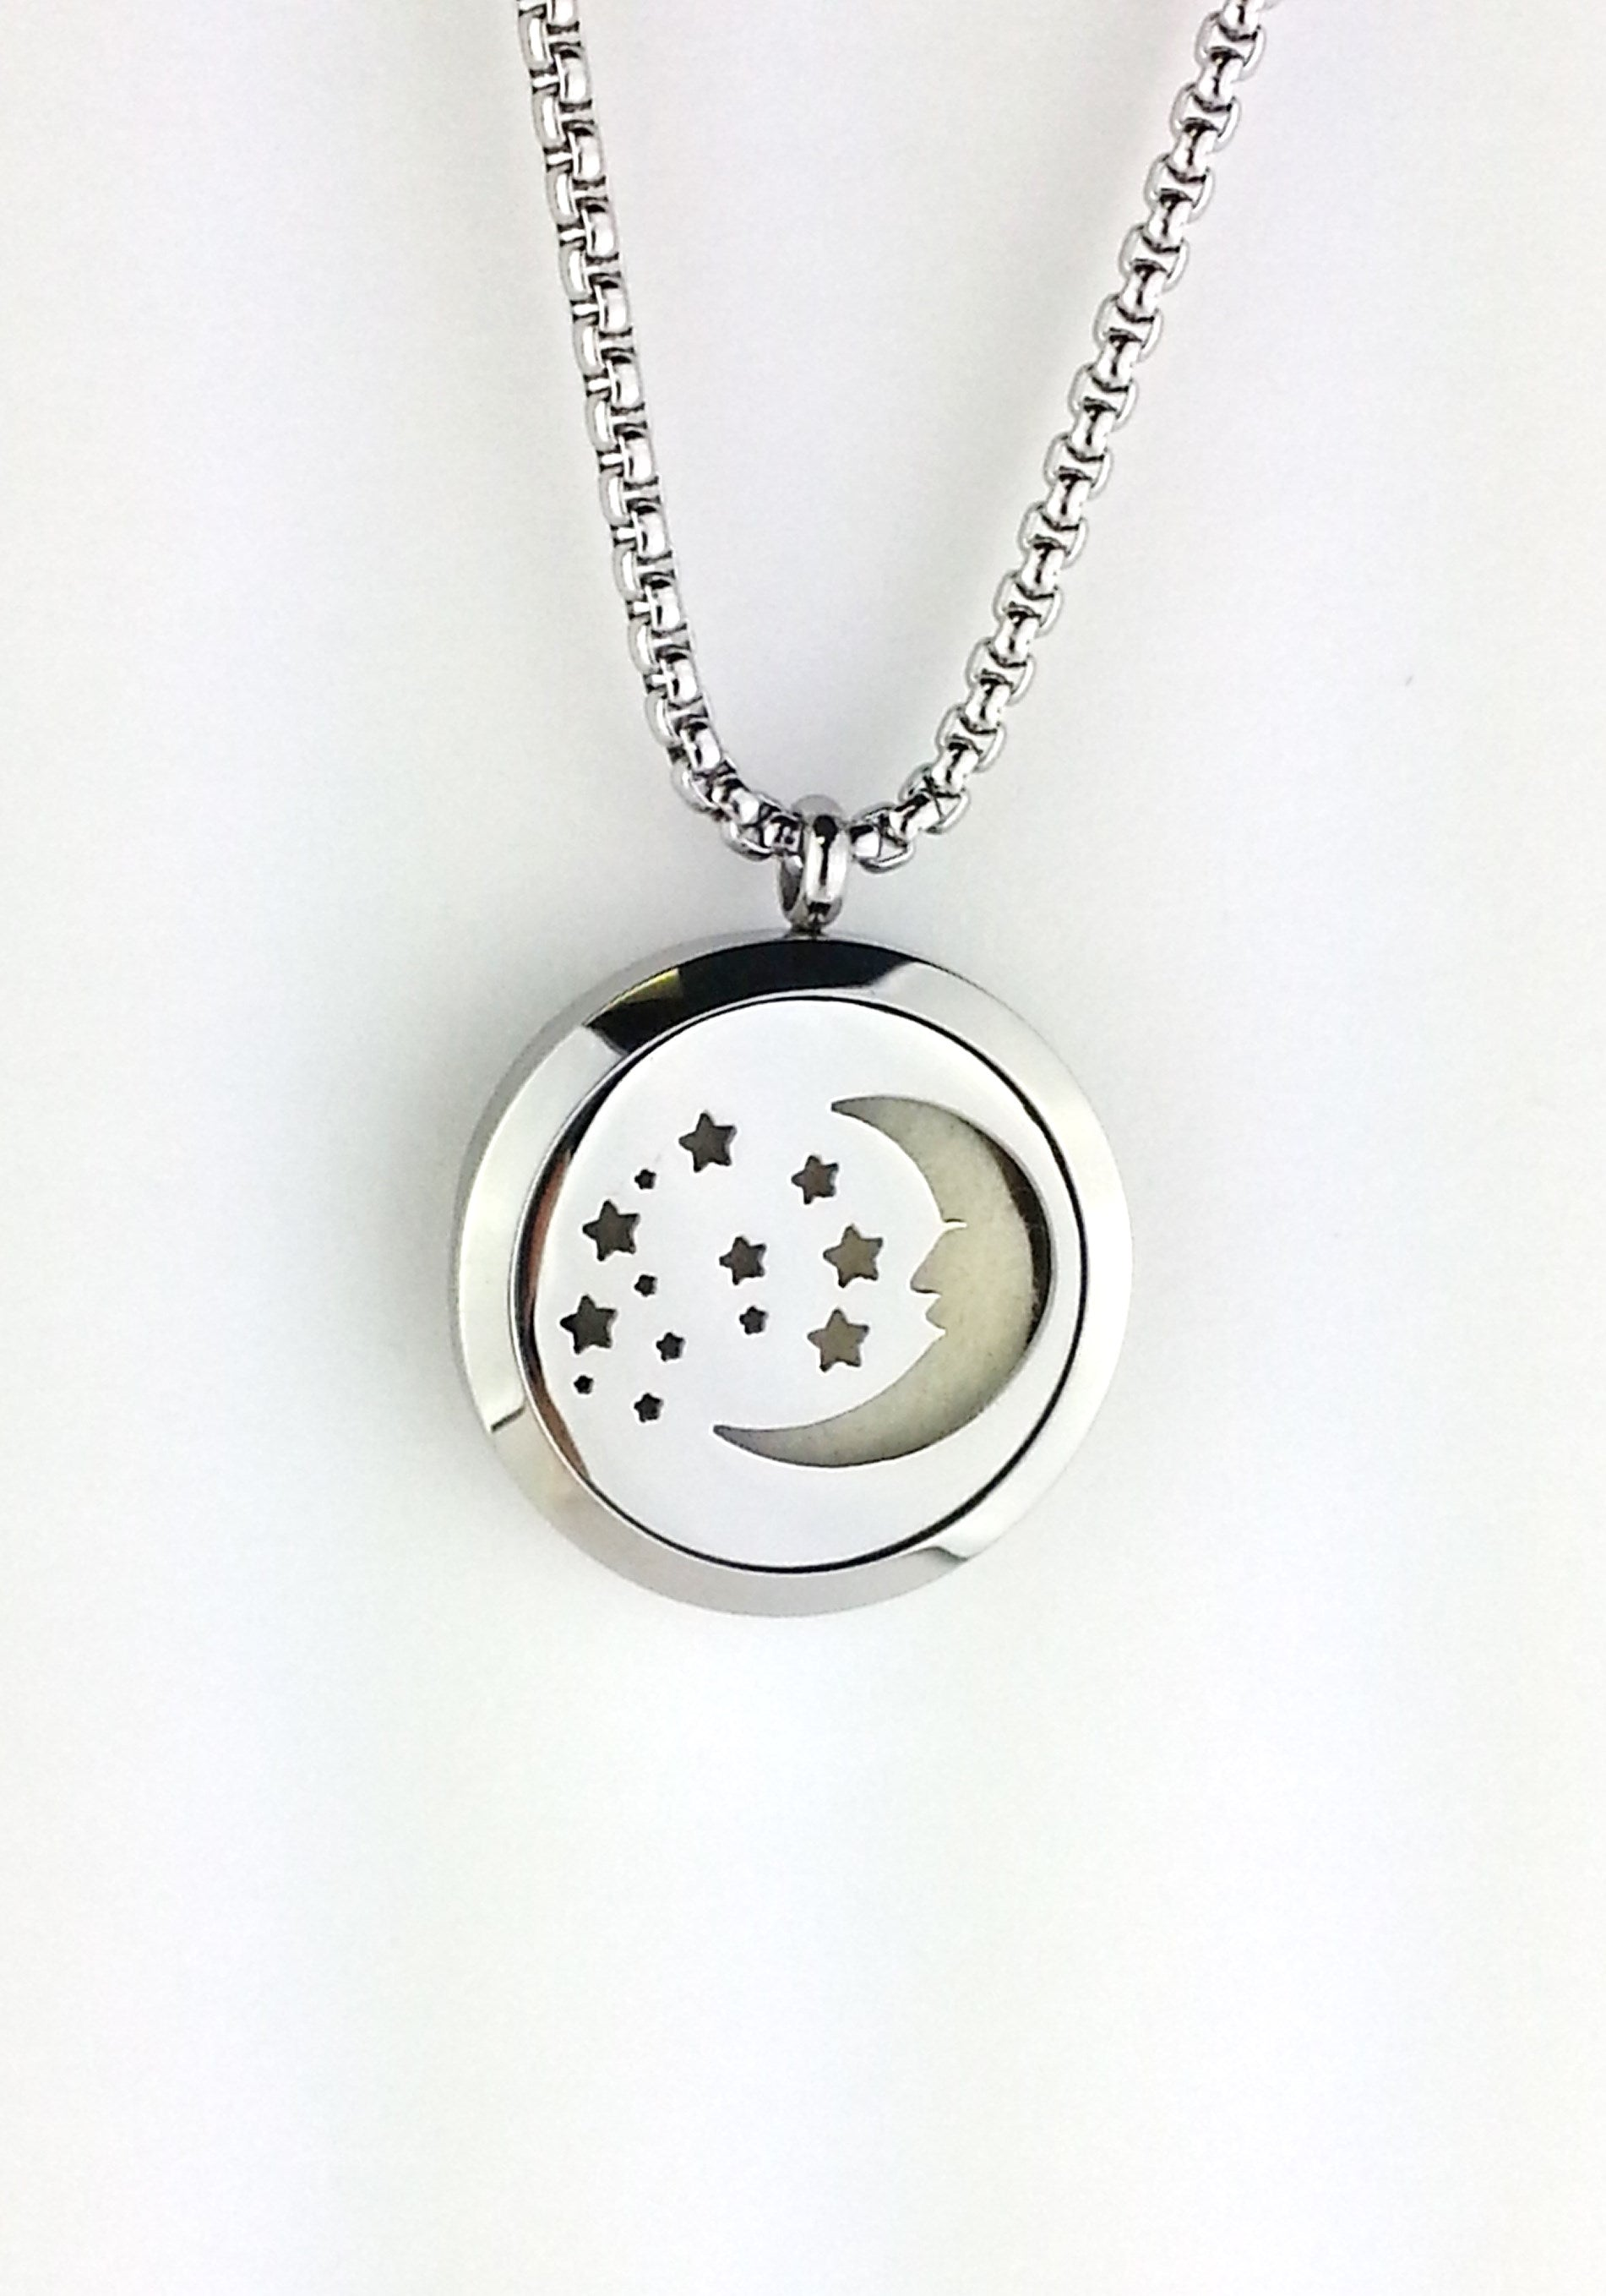 moon and stars diffuser locket necklace made of stainless steel on a stainless steel chain